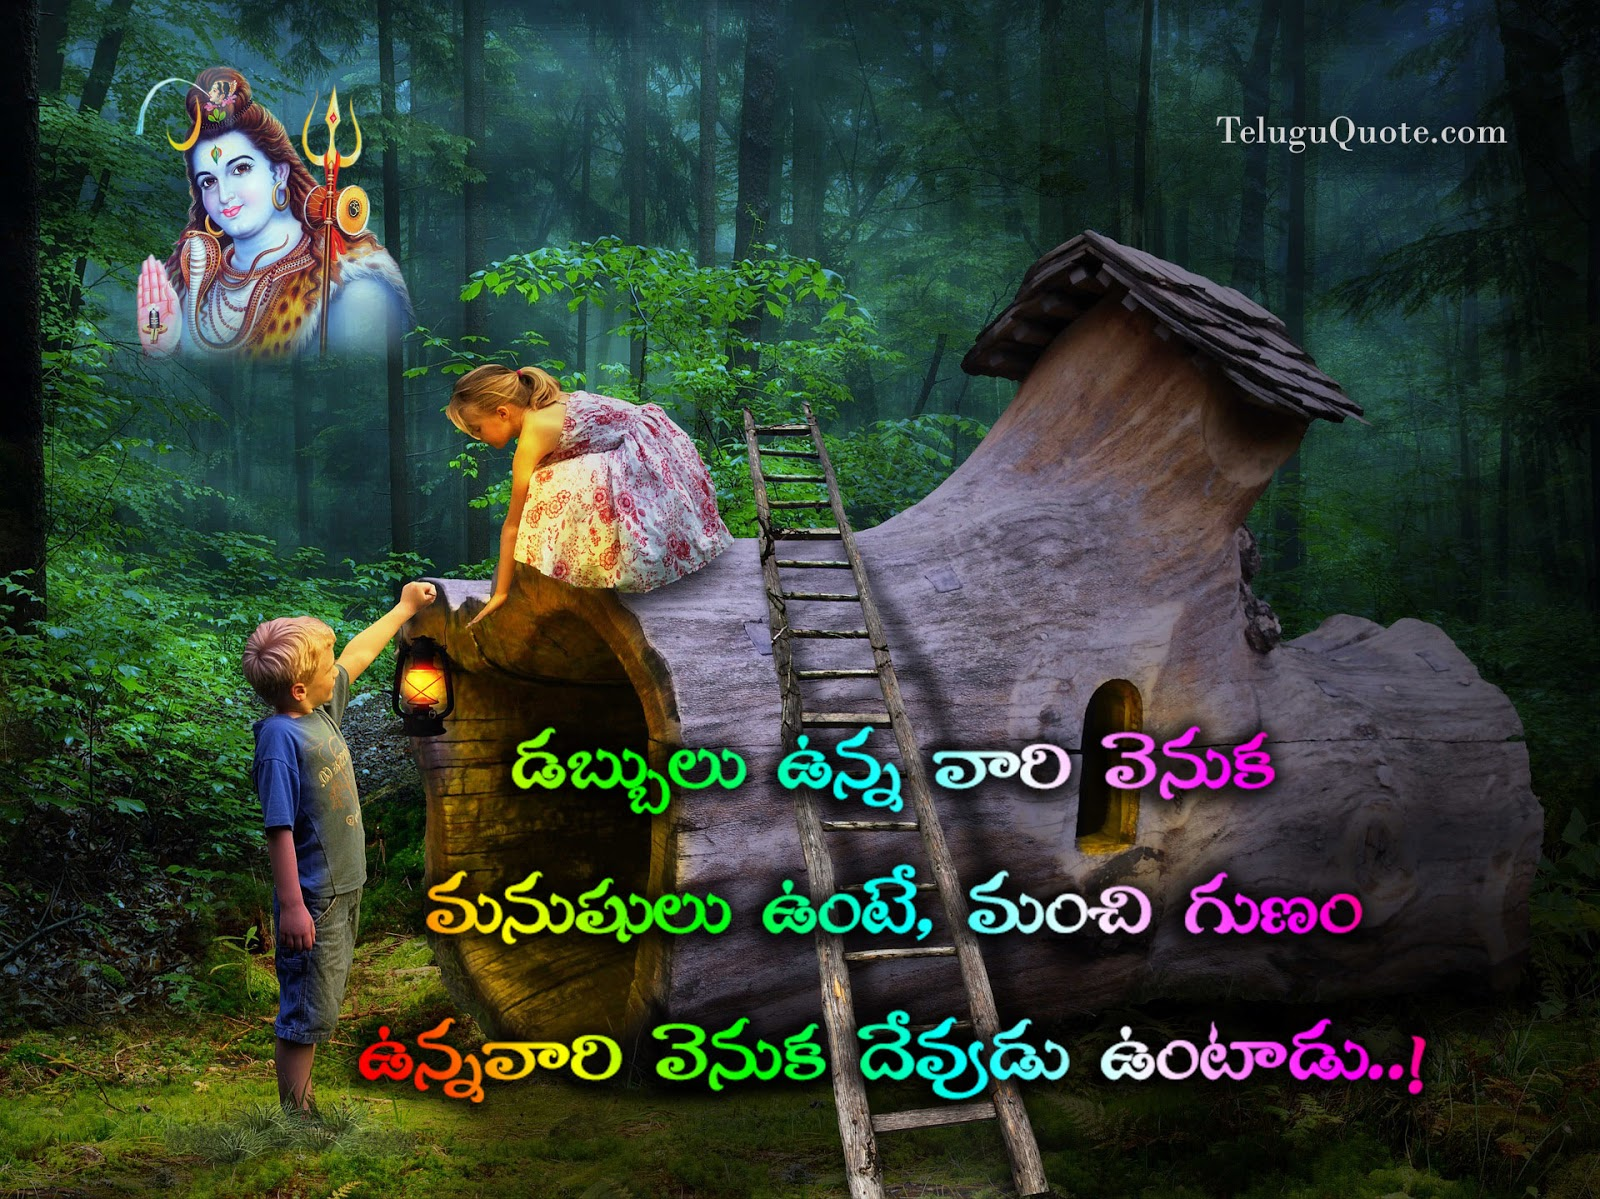 Best god quotes in telugu